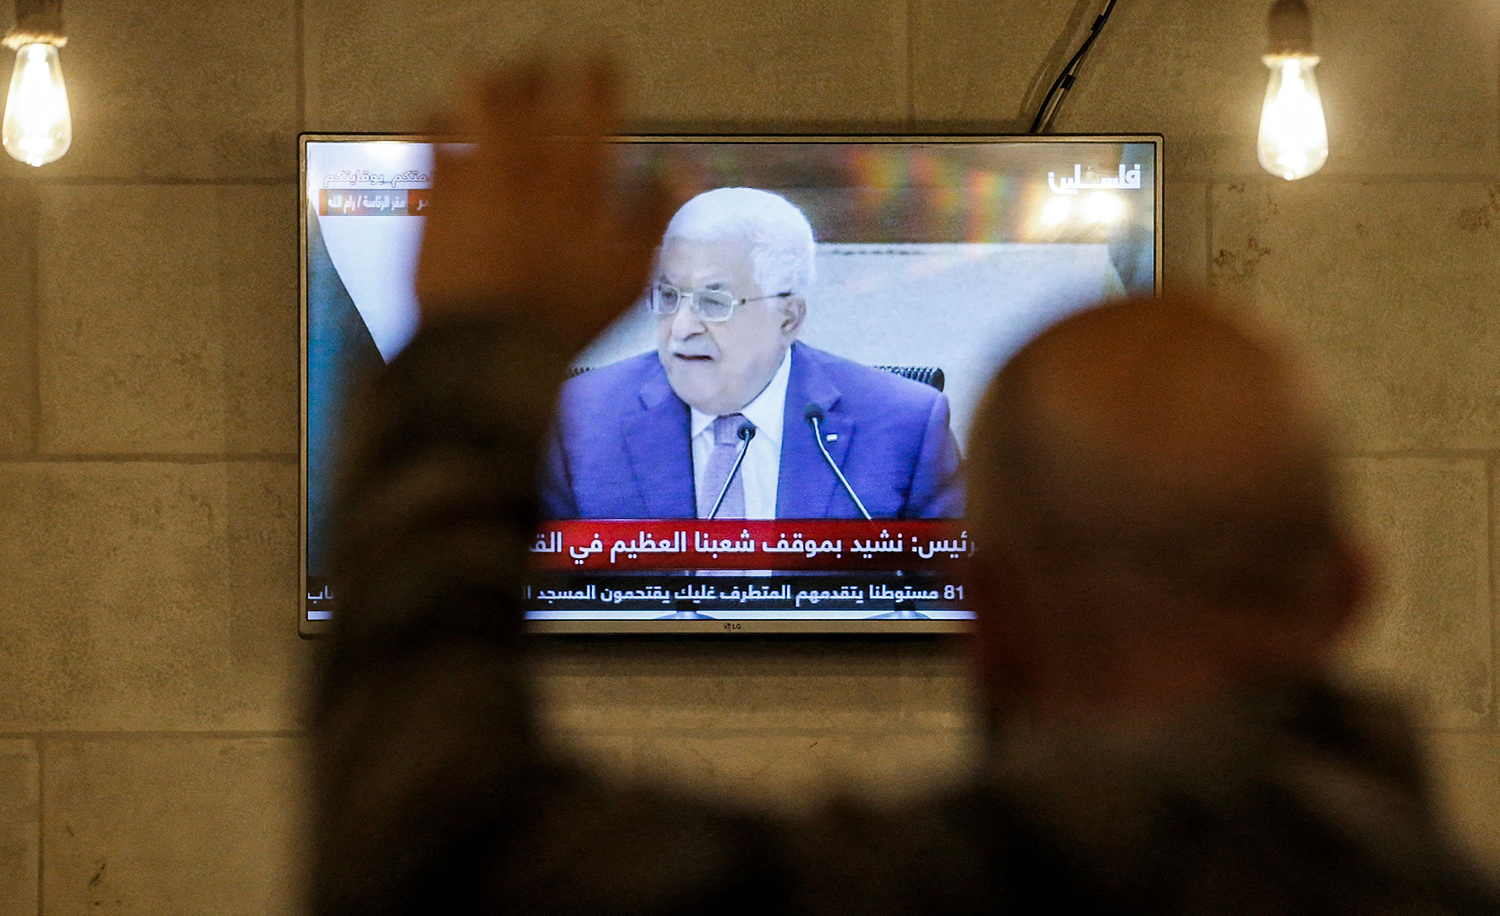 A Palestinian in a coffee shop in Hebron on April 29, 2021 watches a speech by president Mahmoud Abbas. HAZEM BADER/AFP via Getty Images.